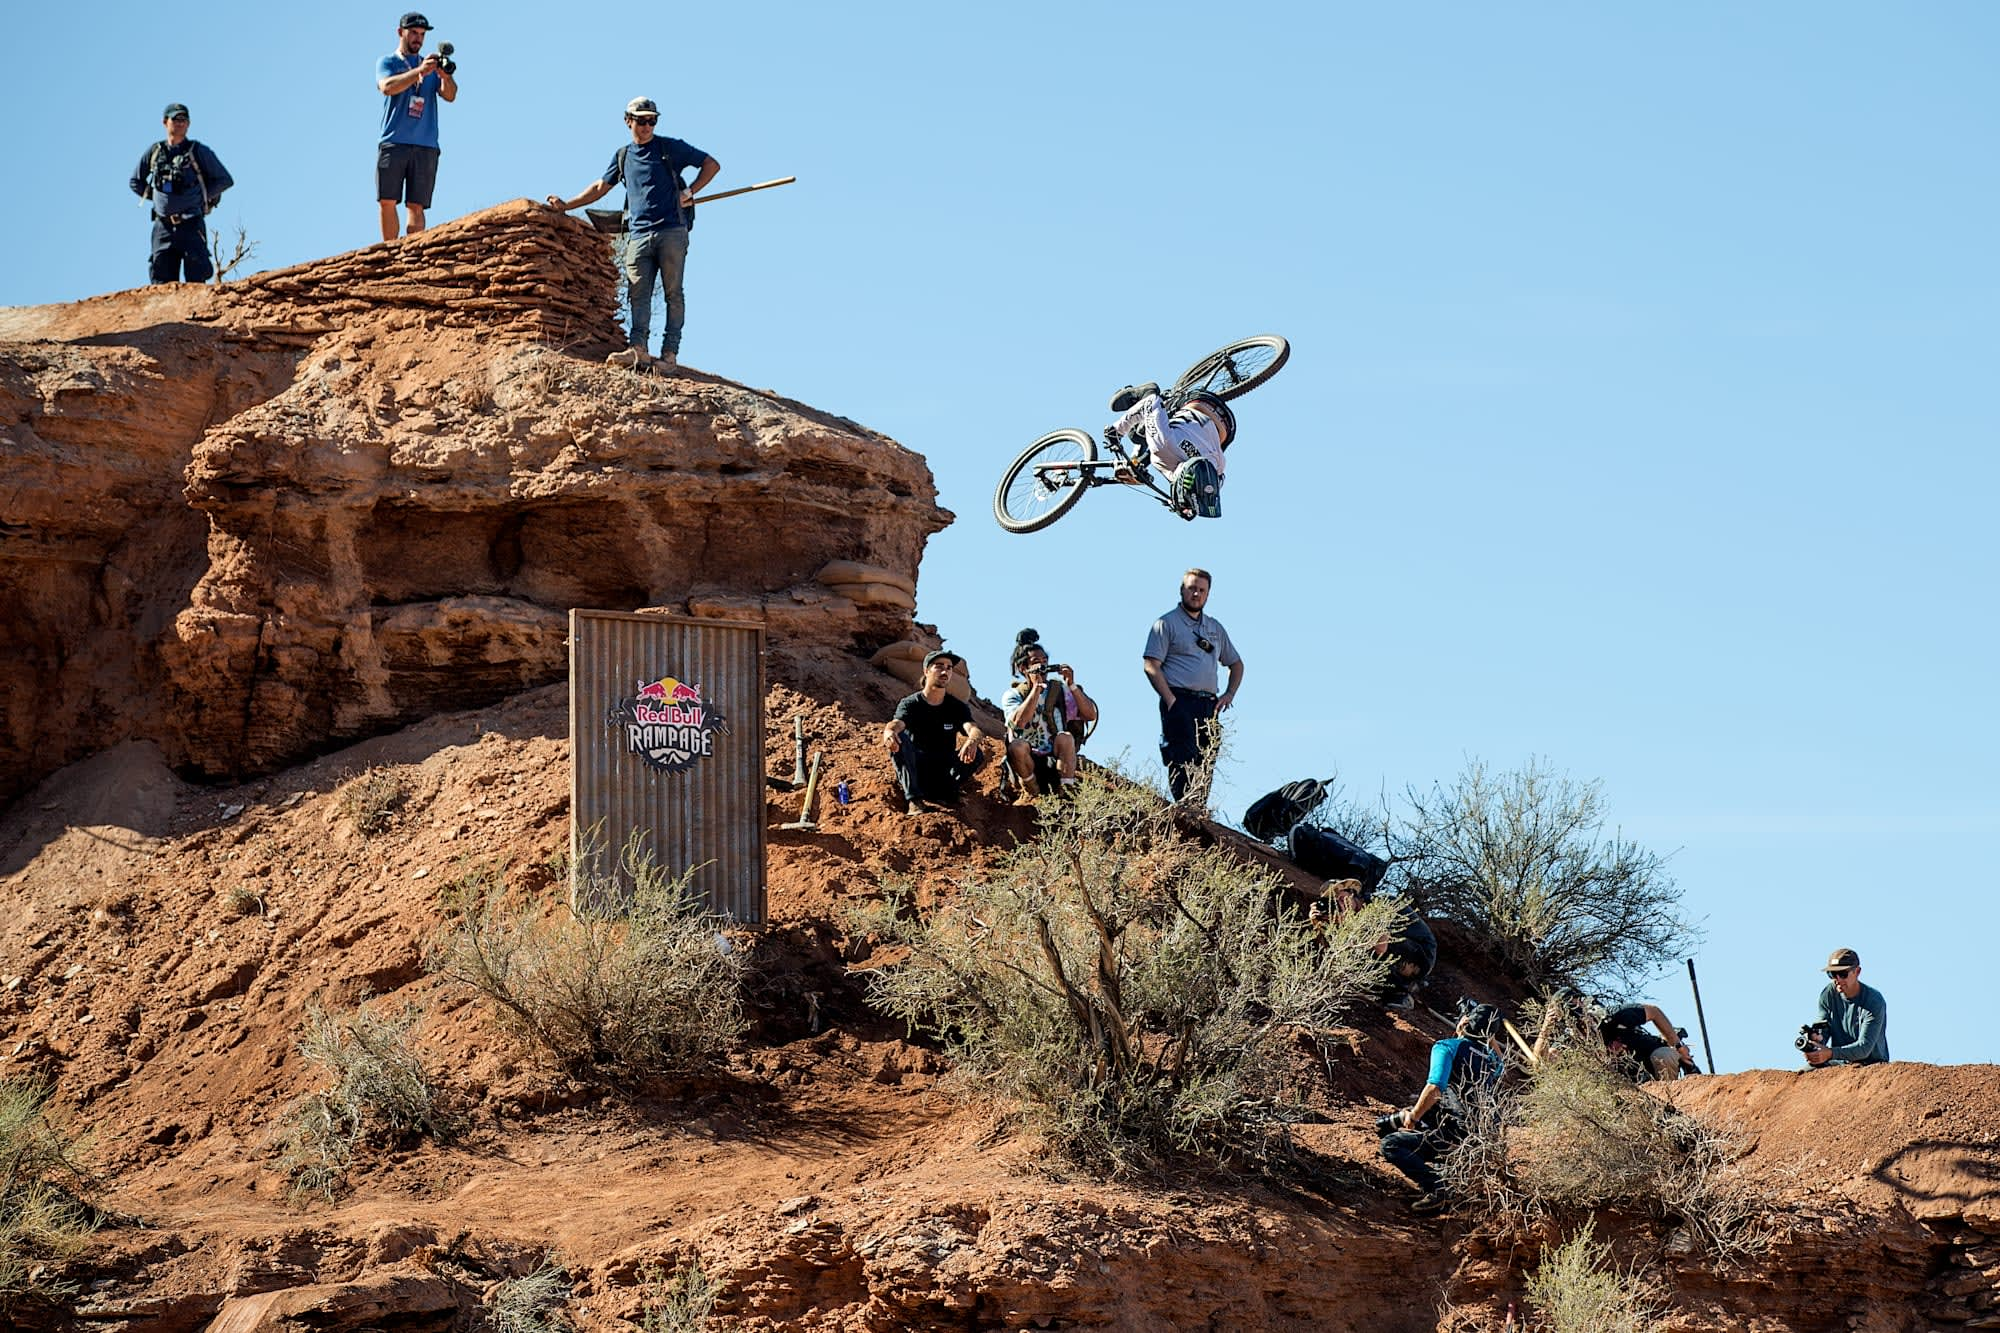 Red Bull Mountain Bike >> Red Bull Puts An Entire Mountain In Your Living Room With Ar